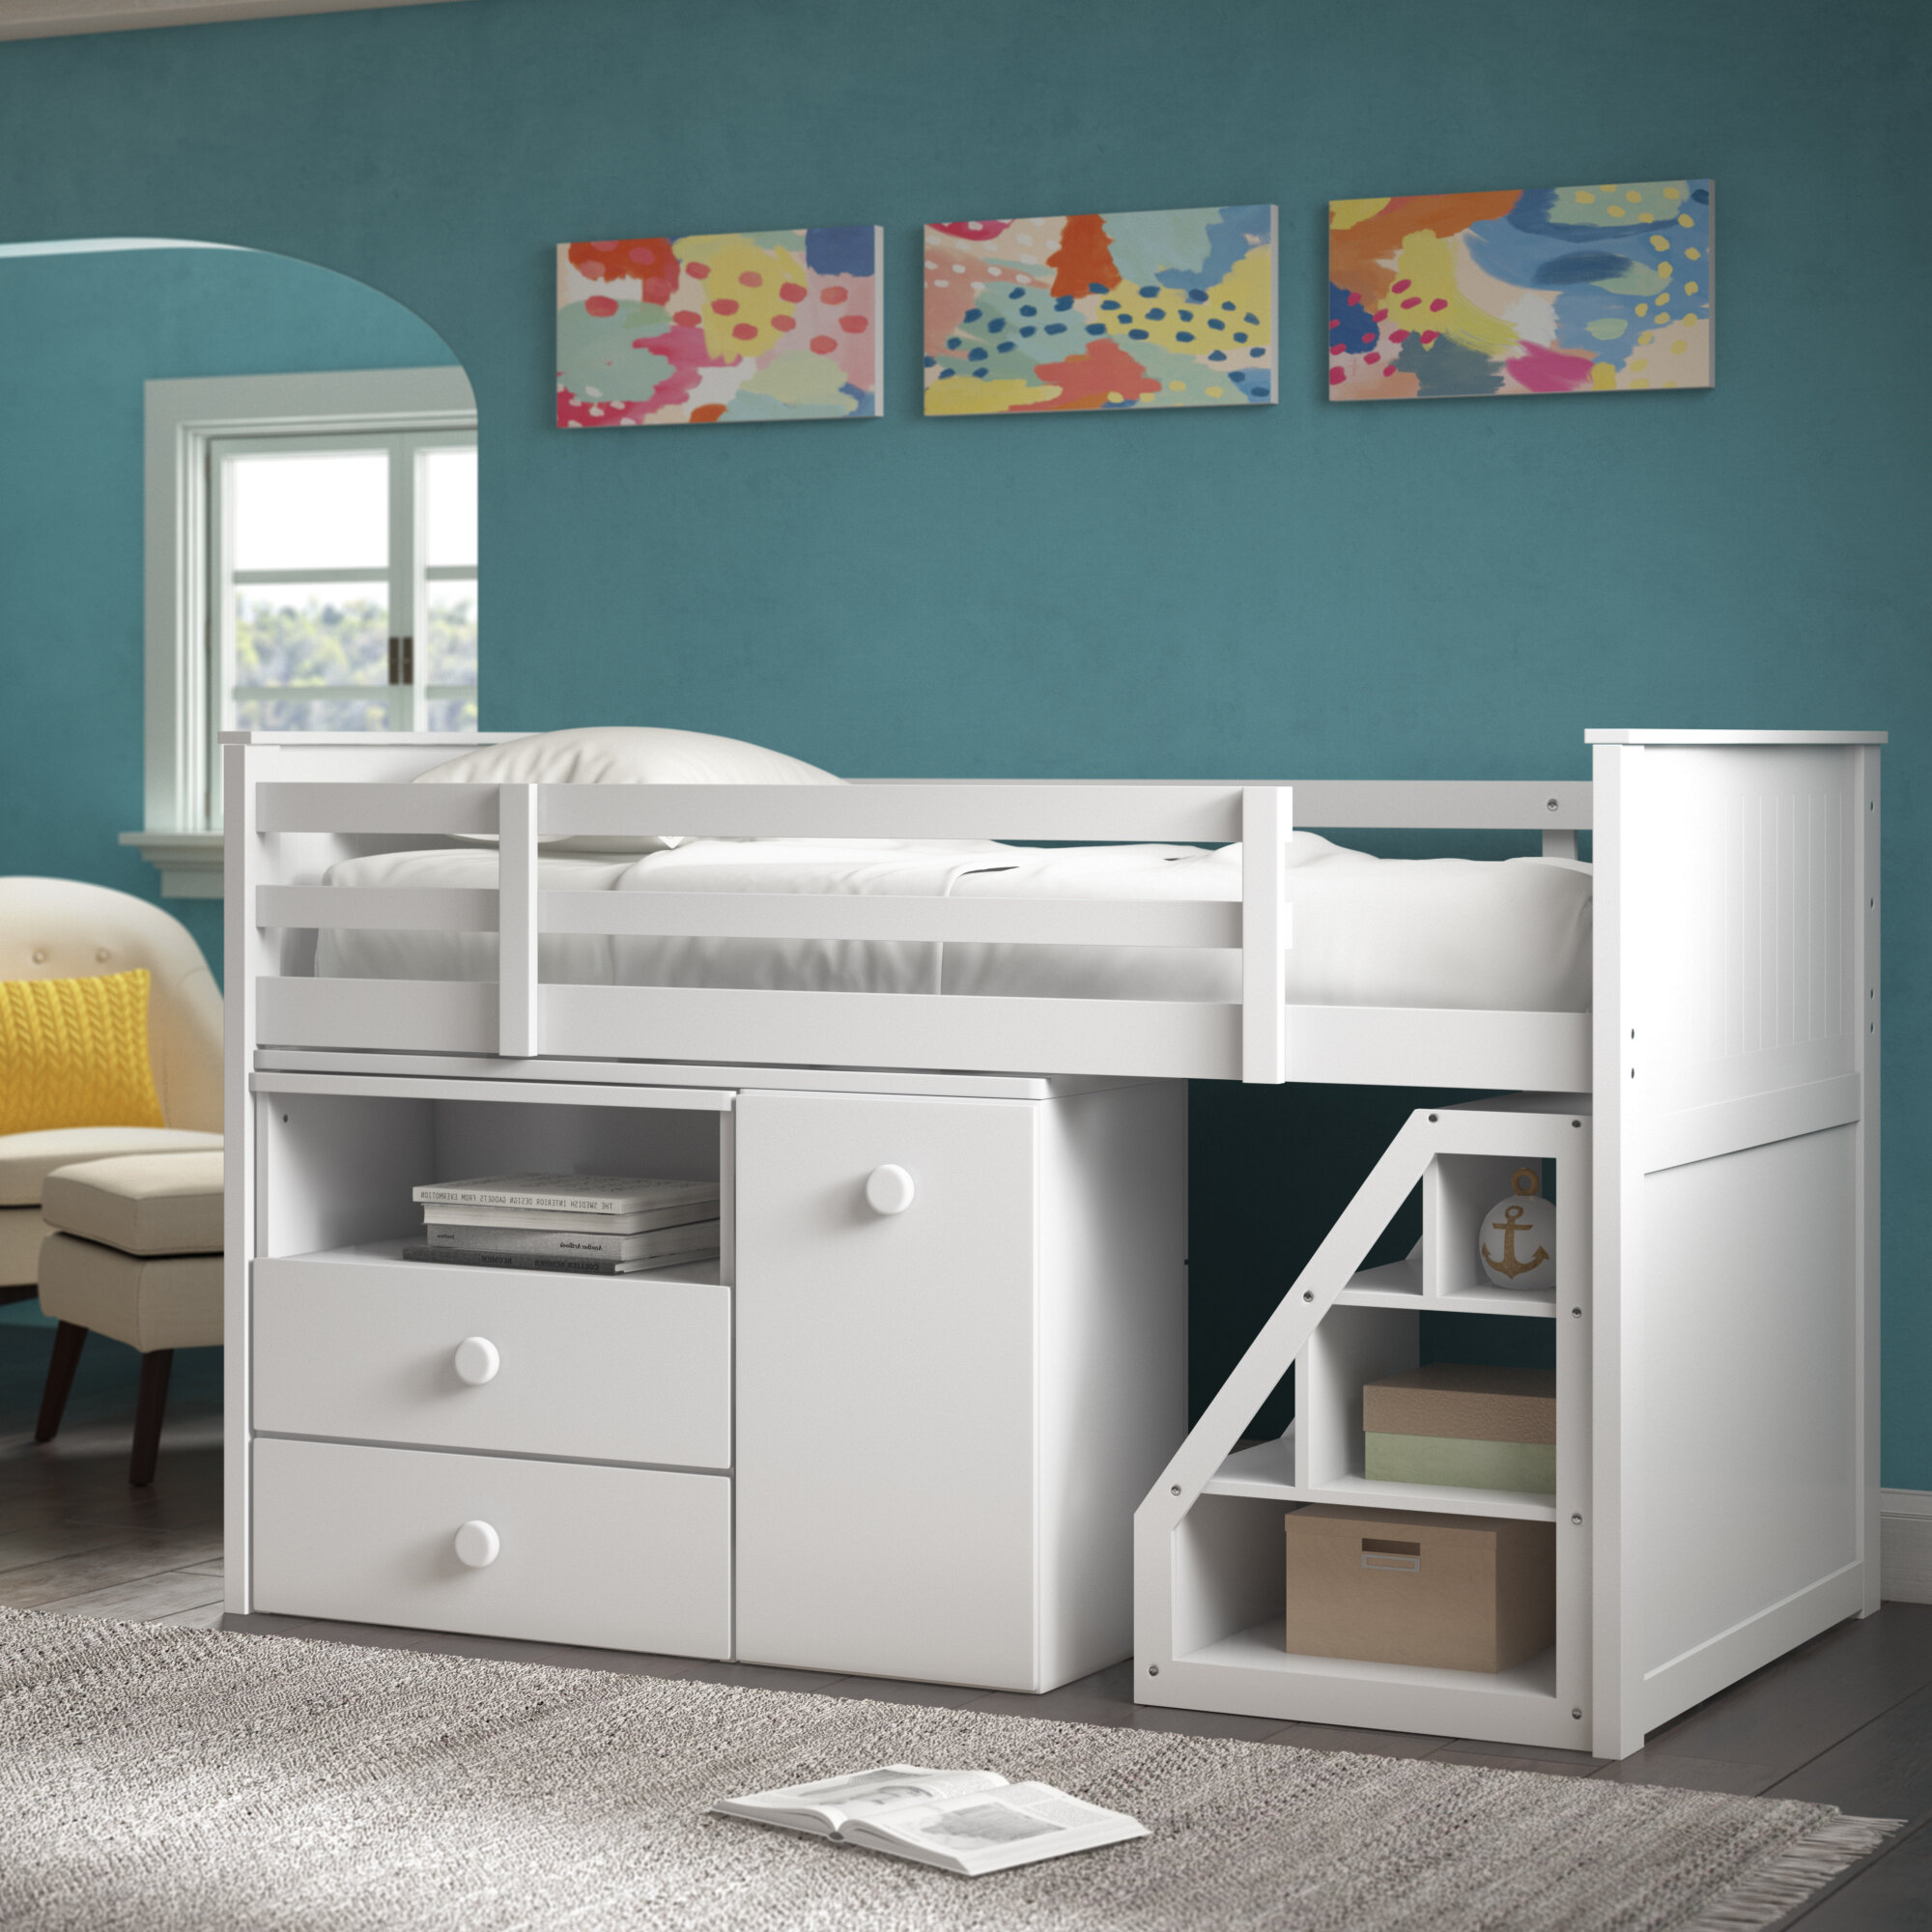 Picture of: Harriet Bee Mitch Twin Loft Bed With Drawers And Shelves Reviews